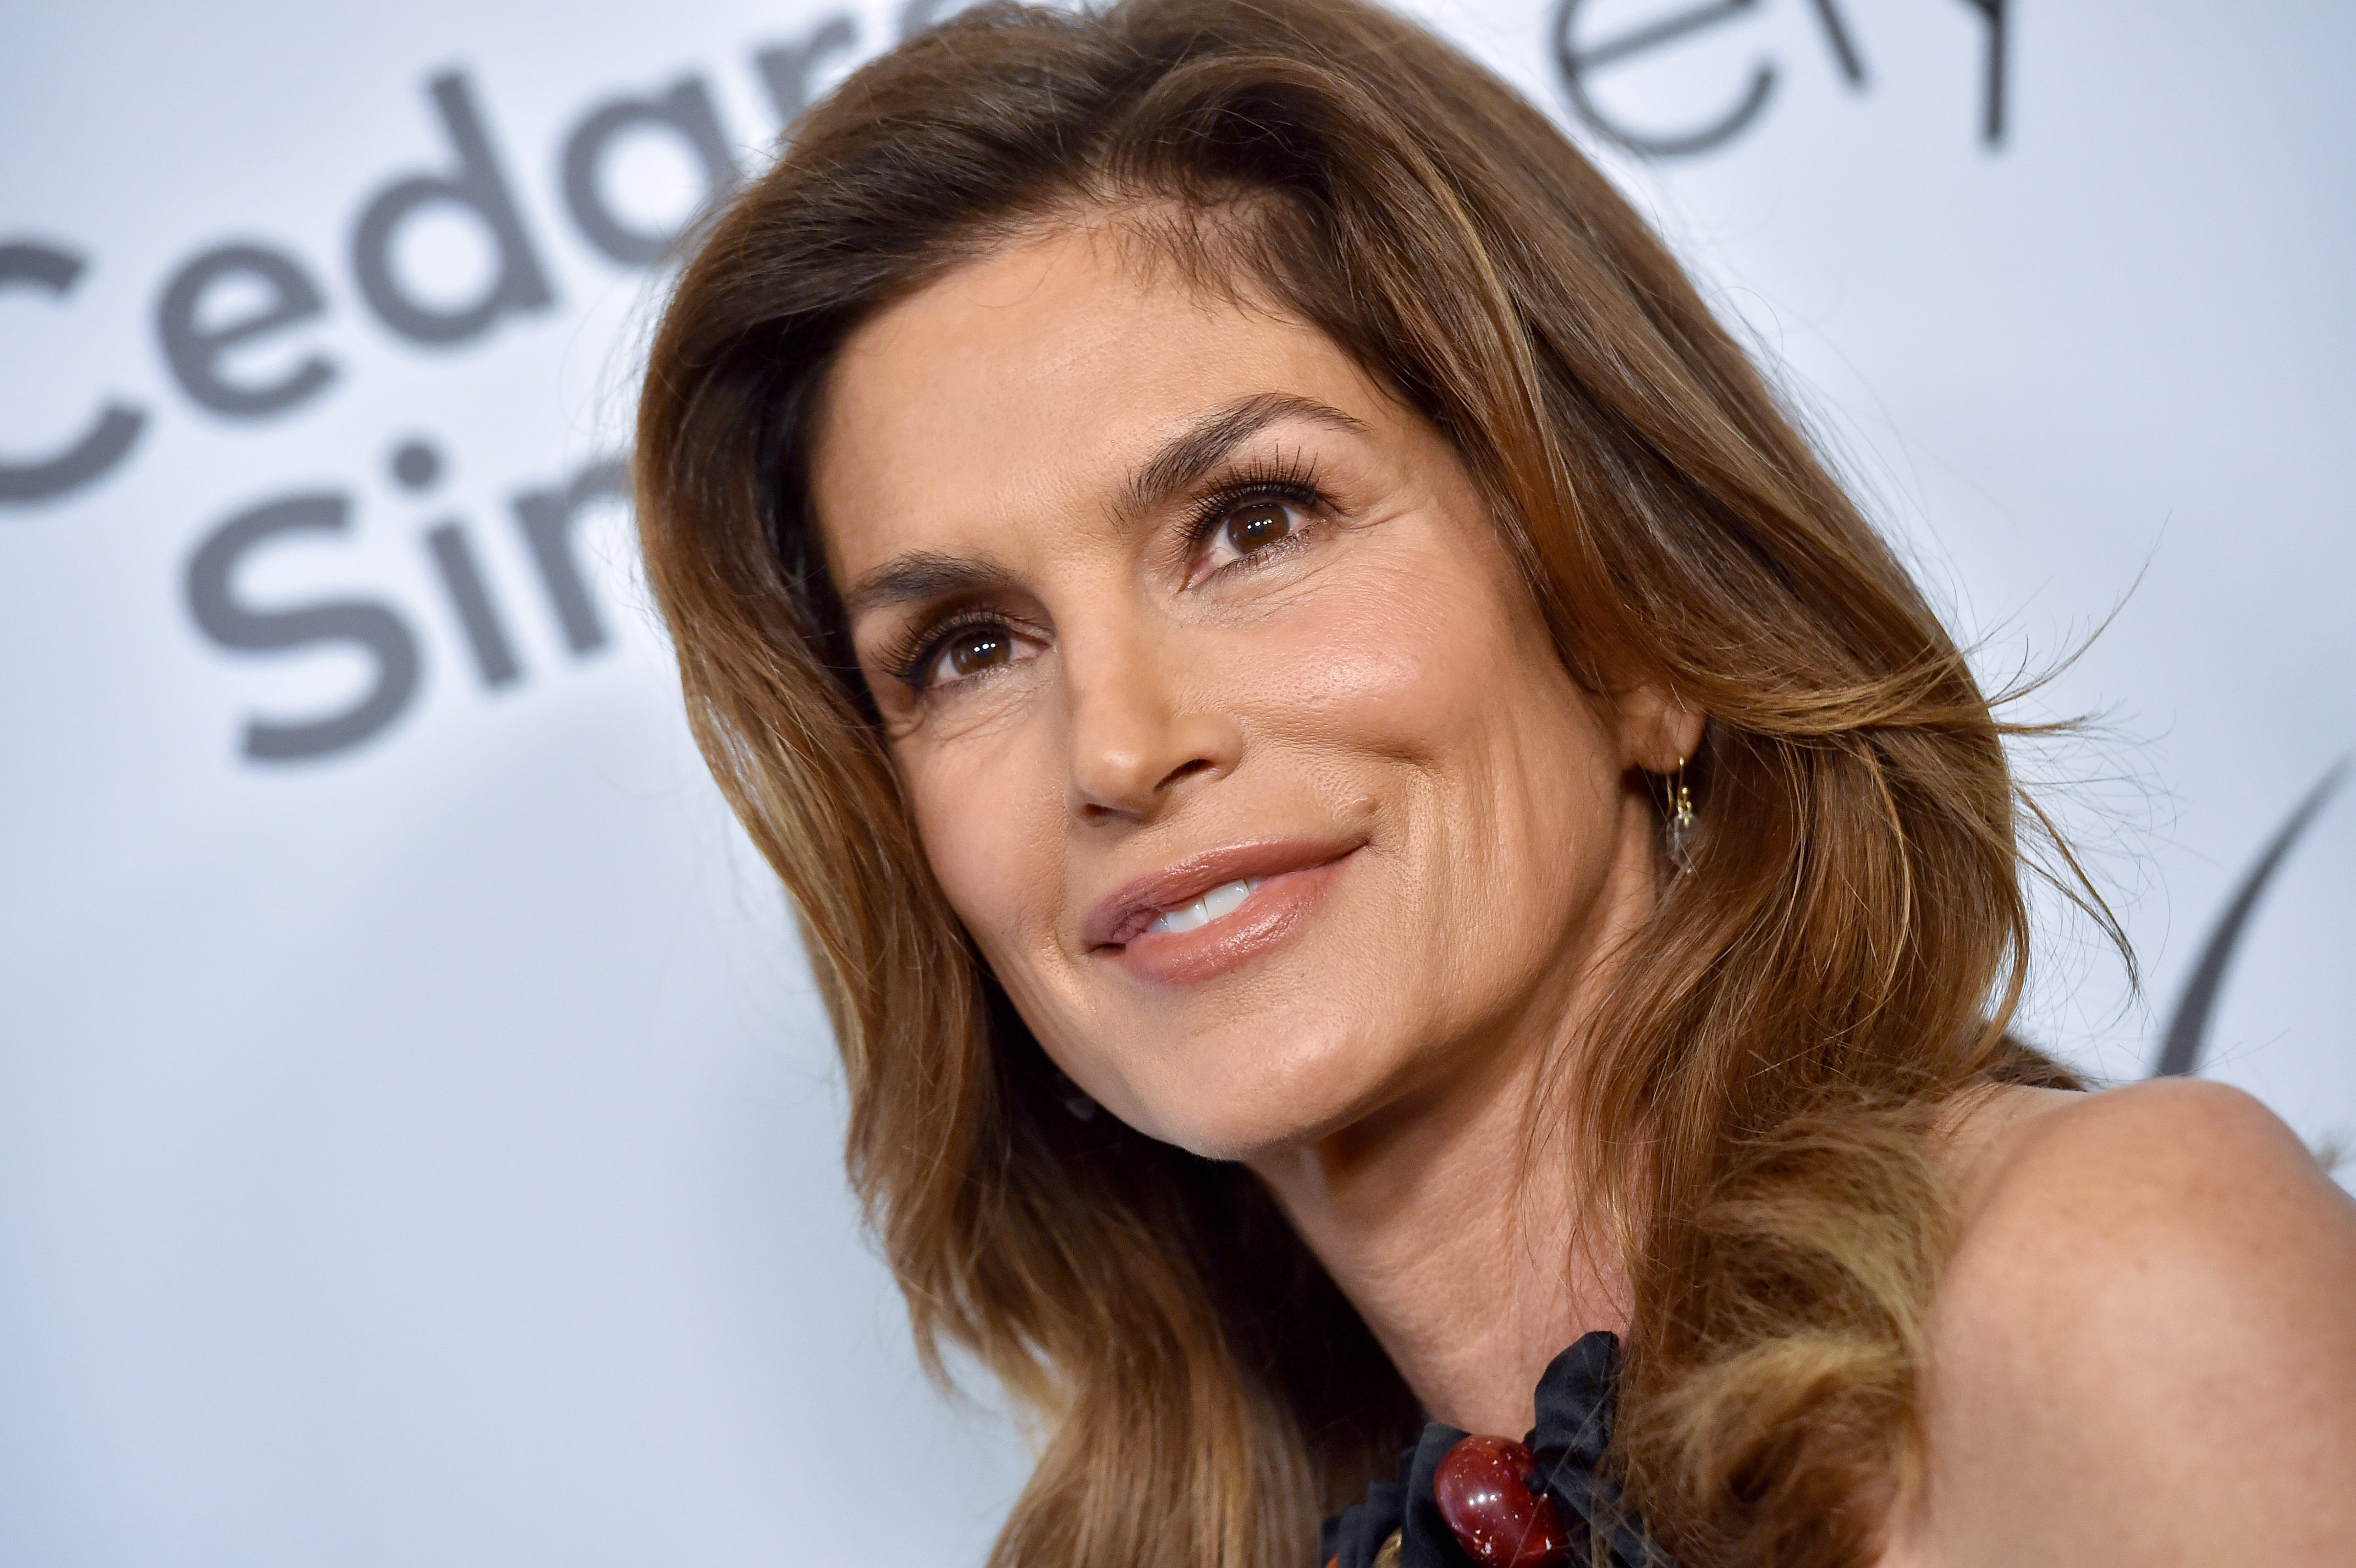 Jennifer Aniston featured in Cindy Crawford's epic 'girl power' photo